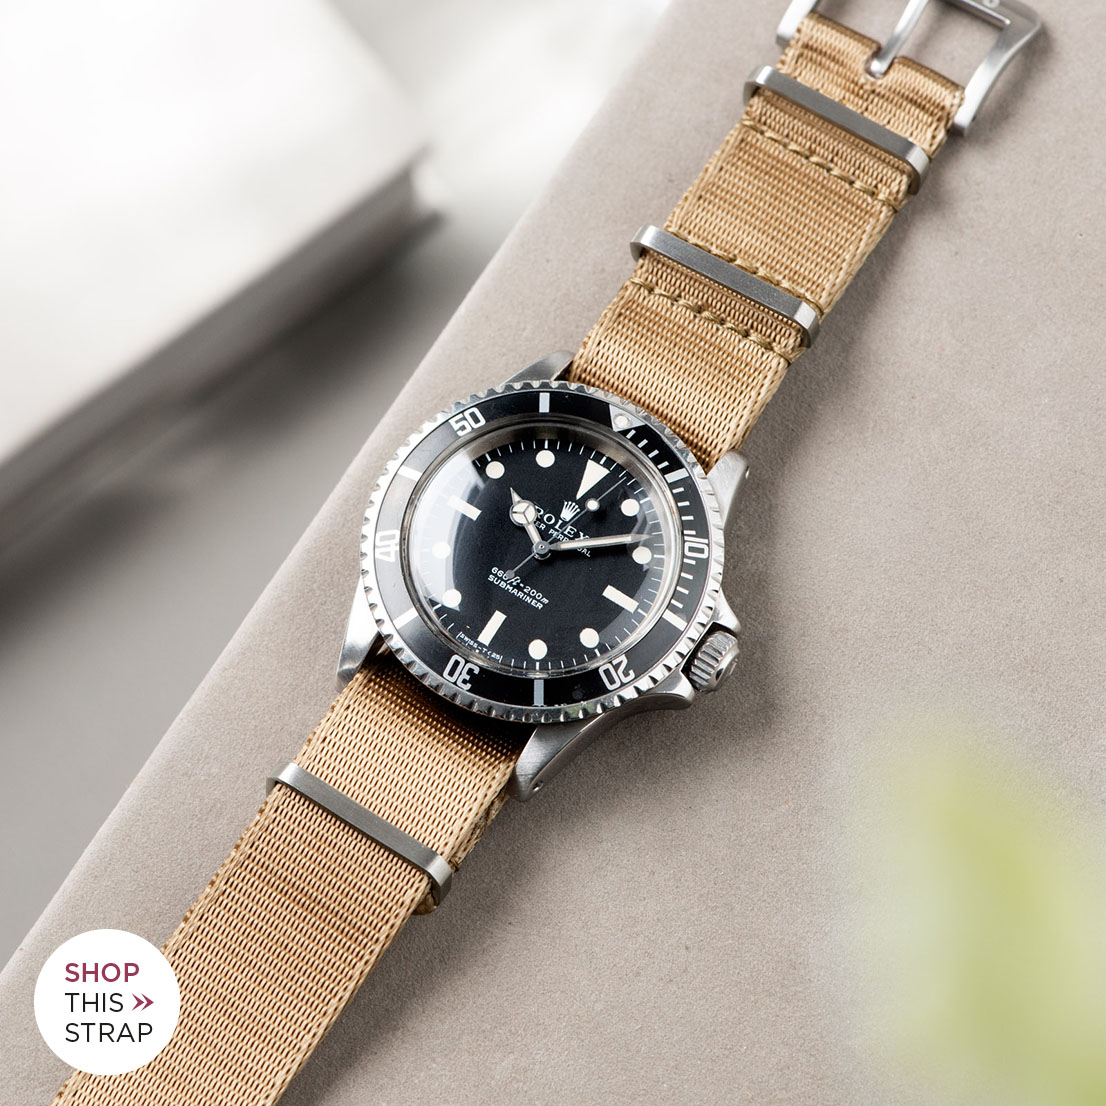 Bulang and Sons_Strap guide_Rolex 5513 Submariner_DELUXE NYLON NATO WATCH STRAP COYOTE BROWN